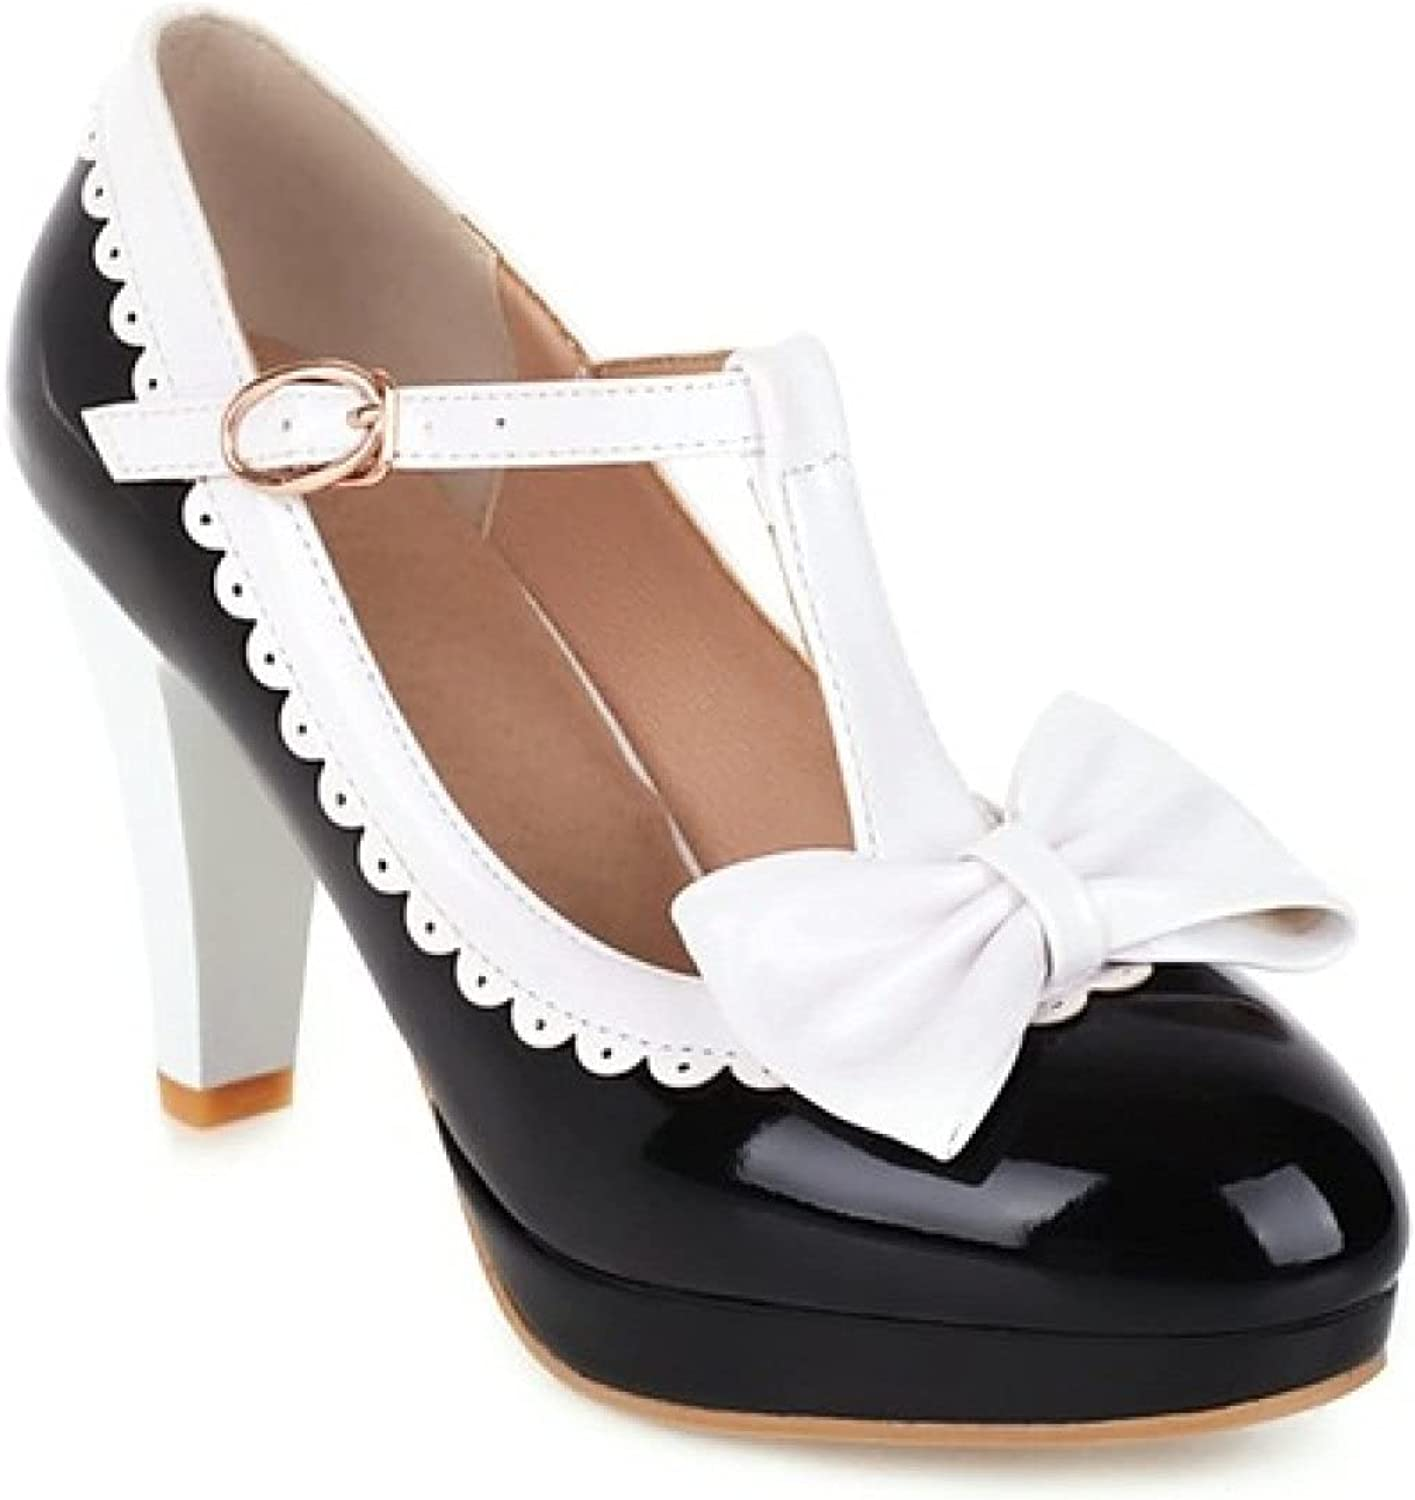 PTONUIC Relaxed Round Toe Mary Jane Pumps of Womans with Formal and Comfort Non-Slip High Heel Dress Shoes for Ladies Girl